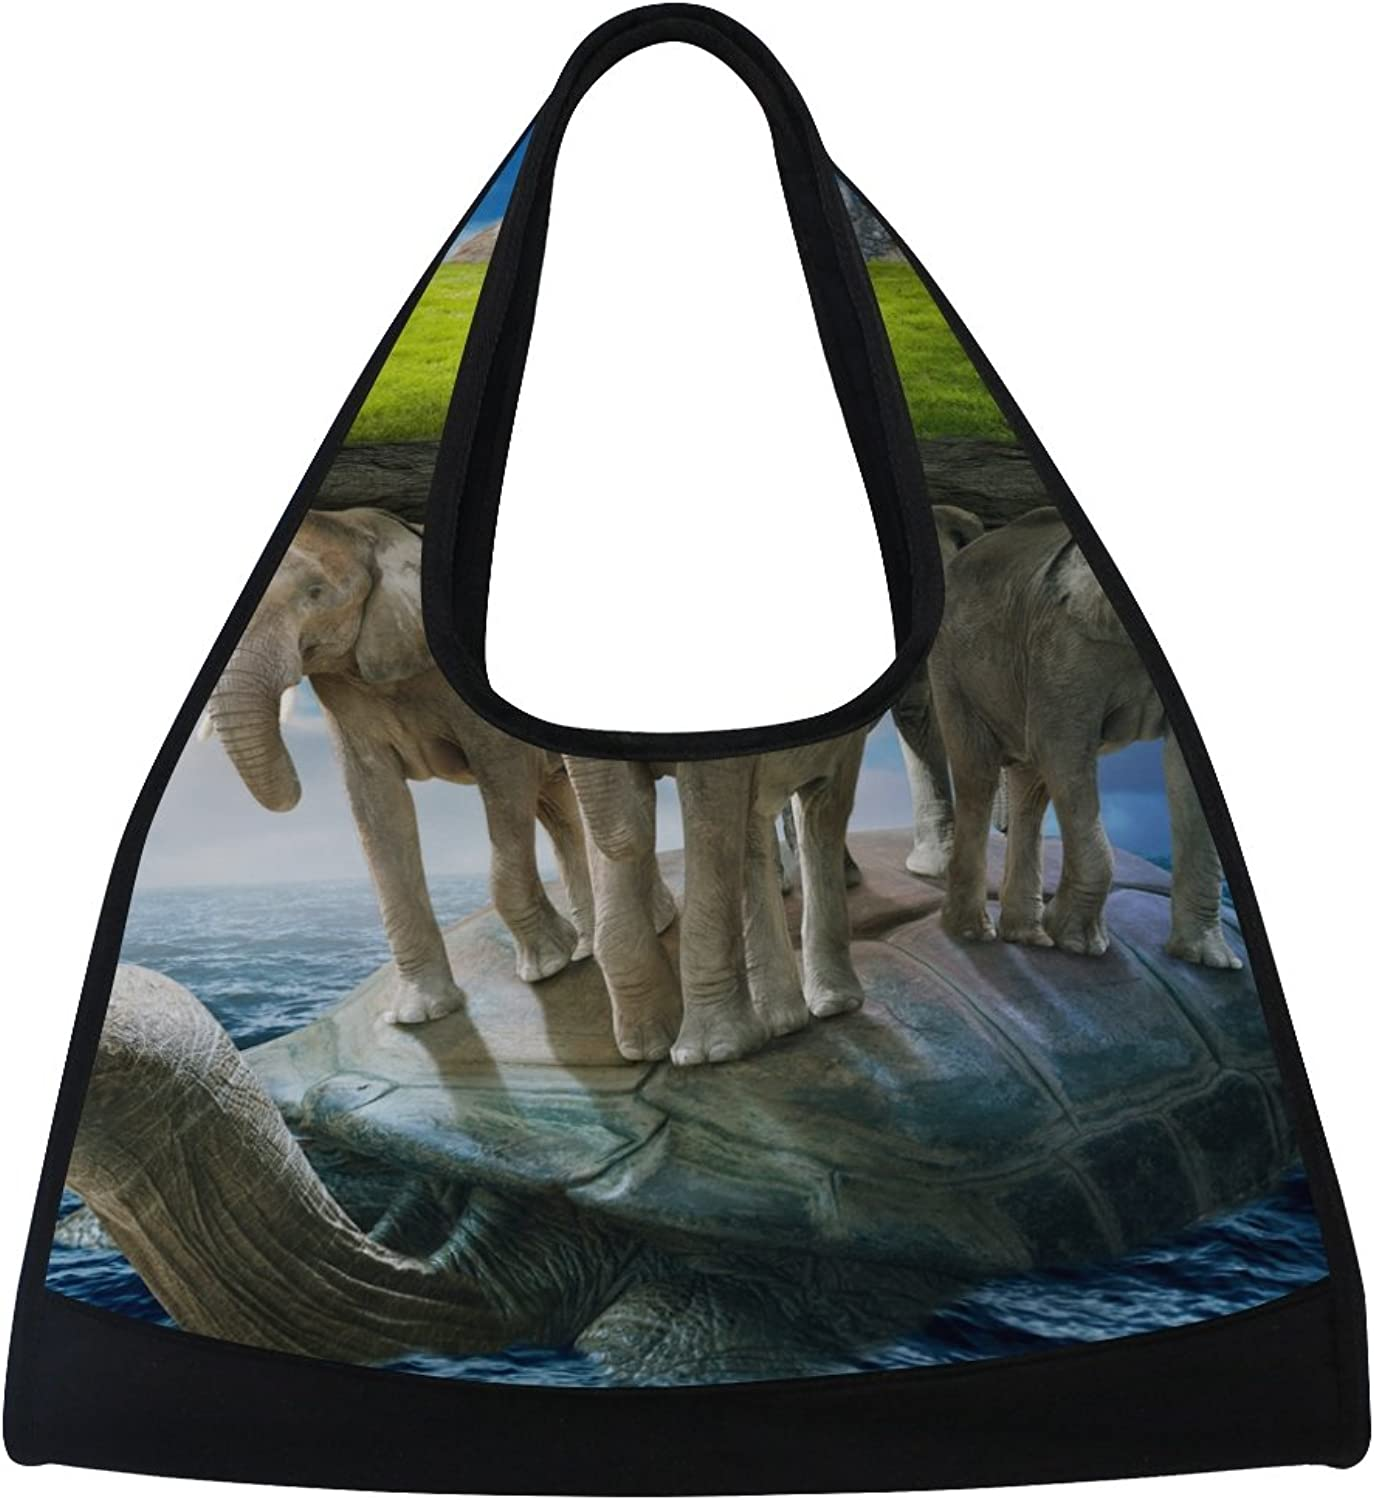 MAPOLO World Turtle Carrying The Elephants That Carries Earth Upon Their Backs Travel Duffel Bag Sports Gym Bag Shoulder Bag